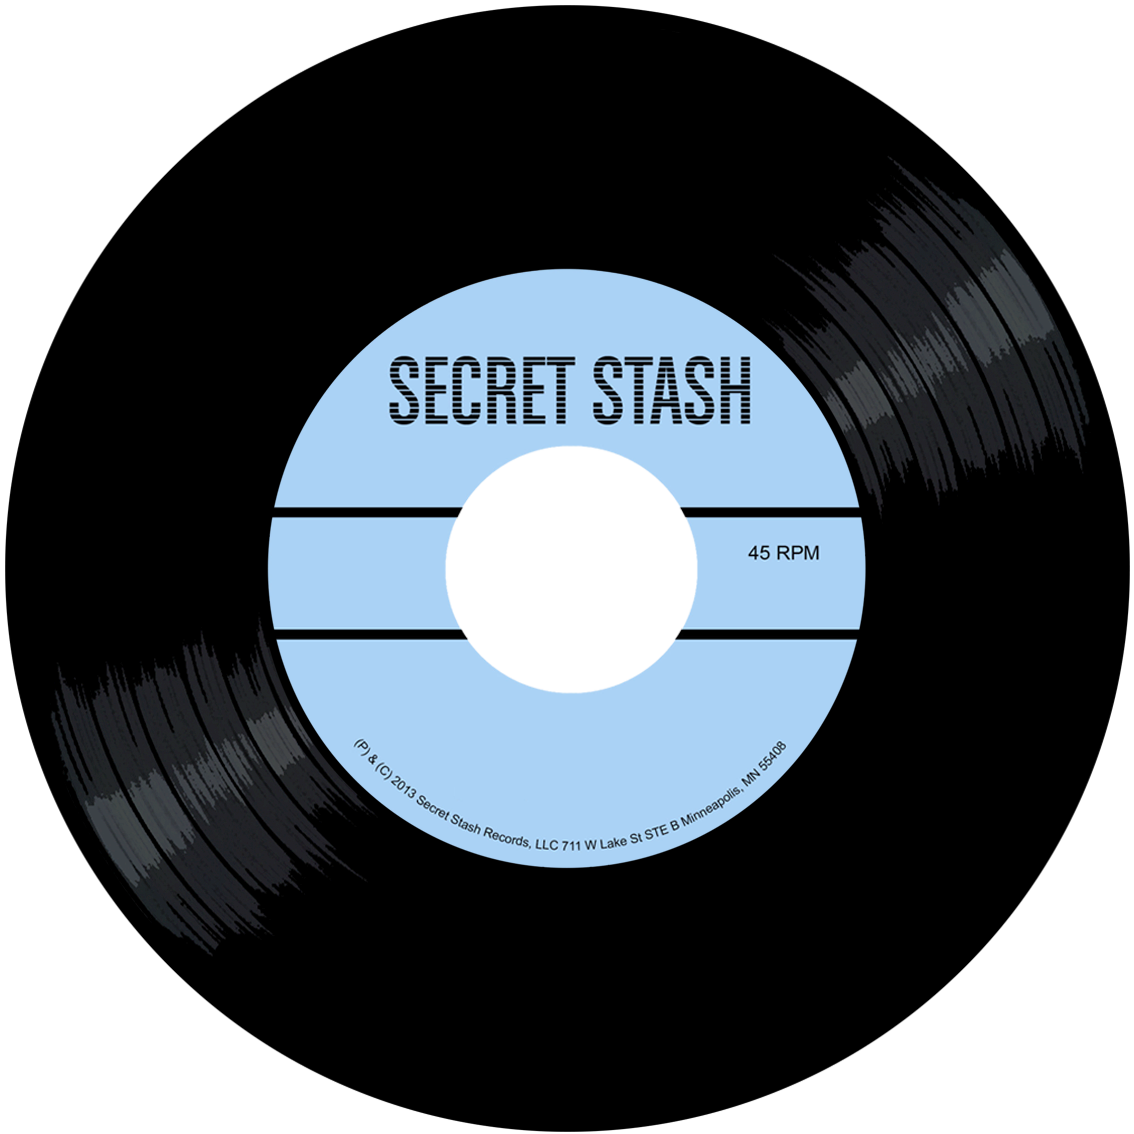 Secret Stash records